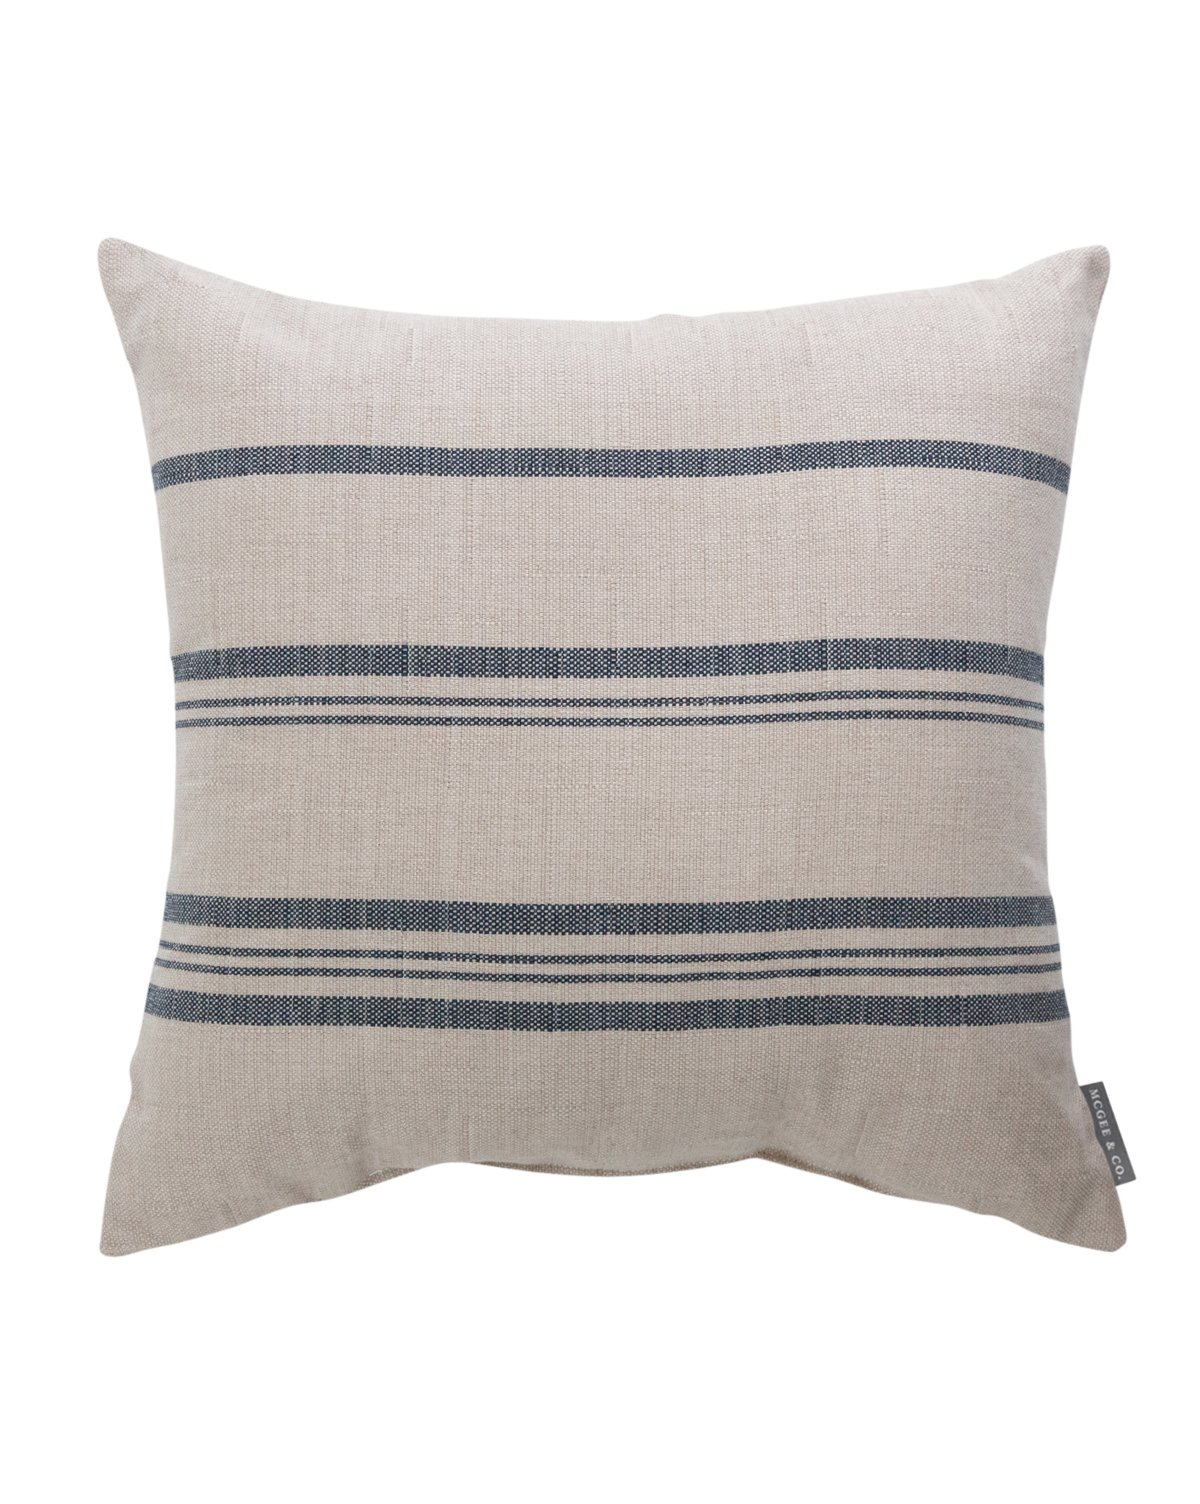 Rowan_Stripe_Indoor_Outdoor_Pillow1_629b21c7-e168-469a-a385-e22cfa8098be.jpg